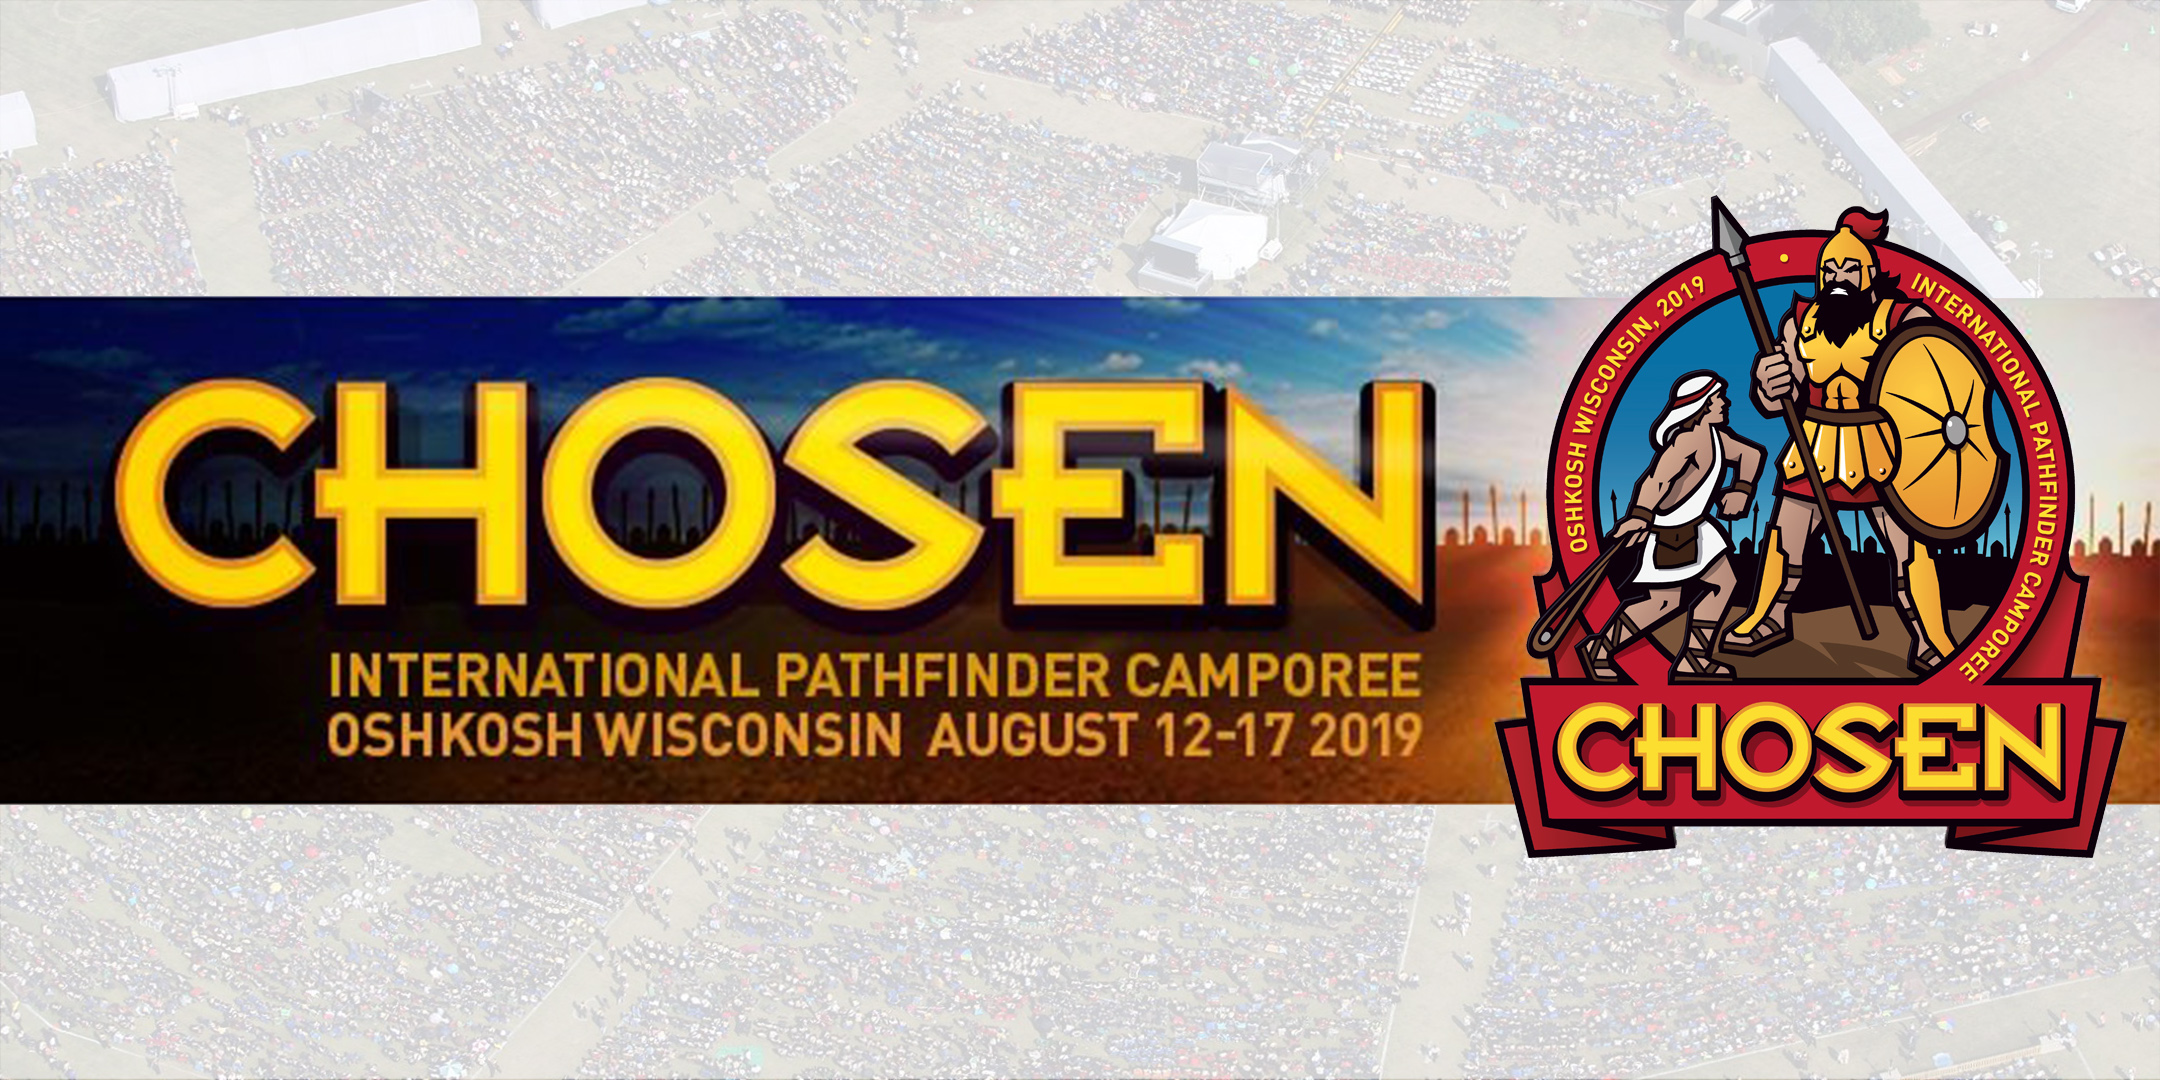 Camporee Oshkosh 2019